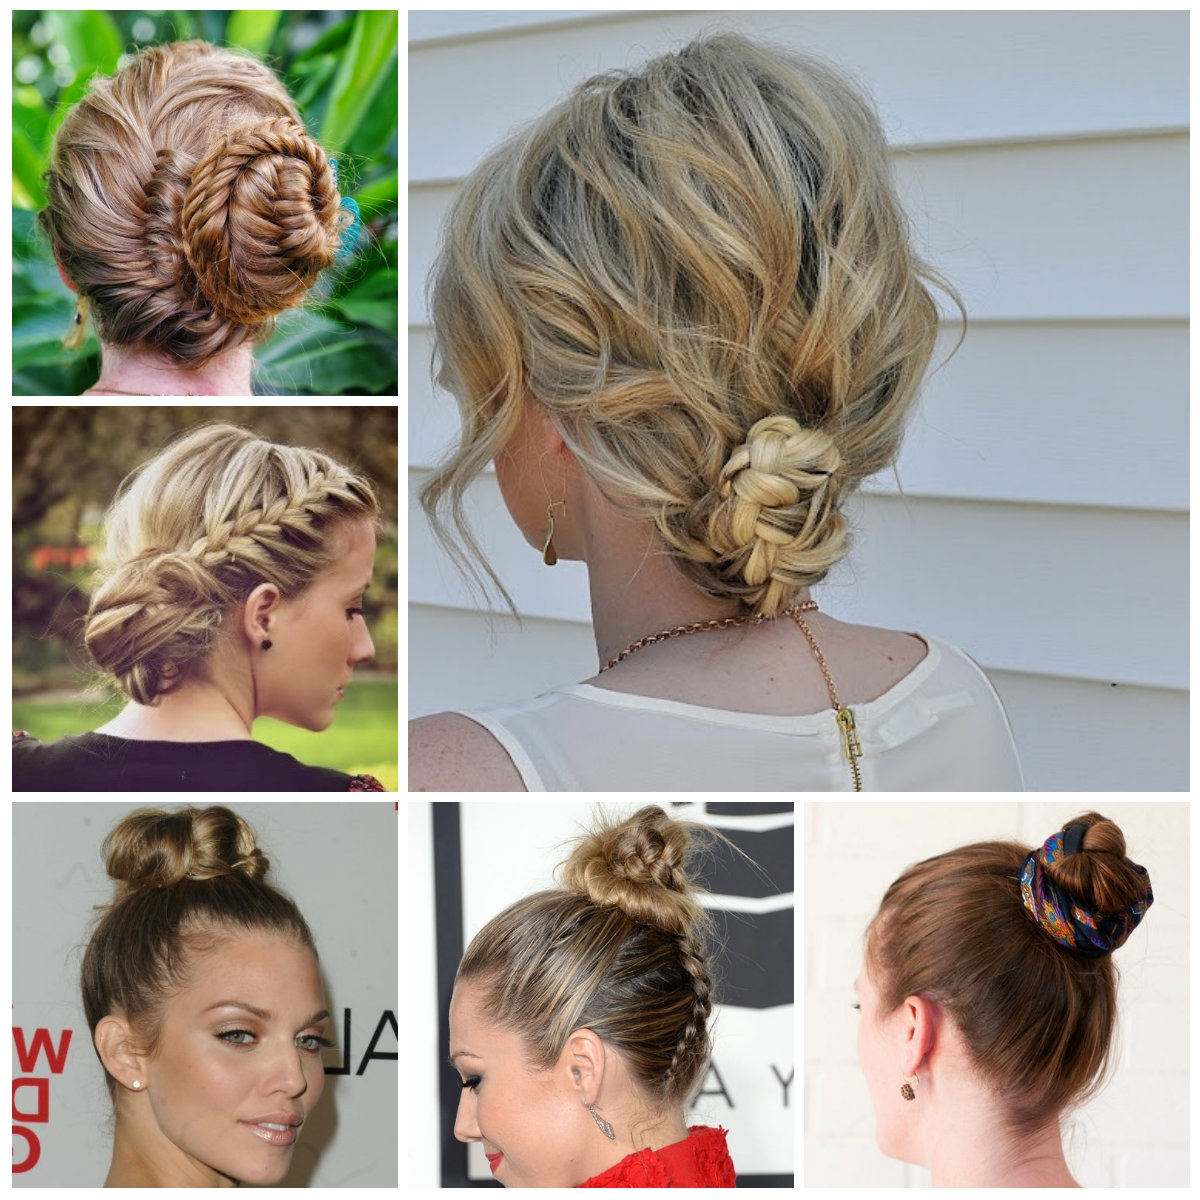 Best And Newest Braid And Bun Hairstyles In Cute Braided Bun Hairstyles 2016 Best Of Hairstyles With Braids And (View 4 of 15)